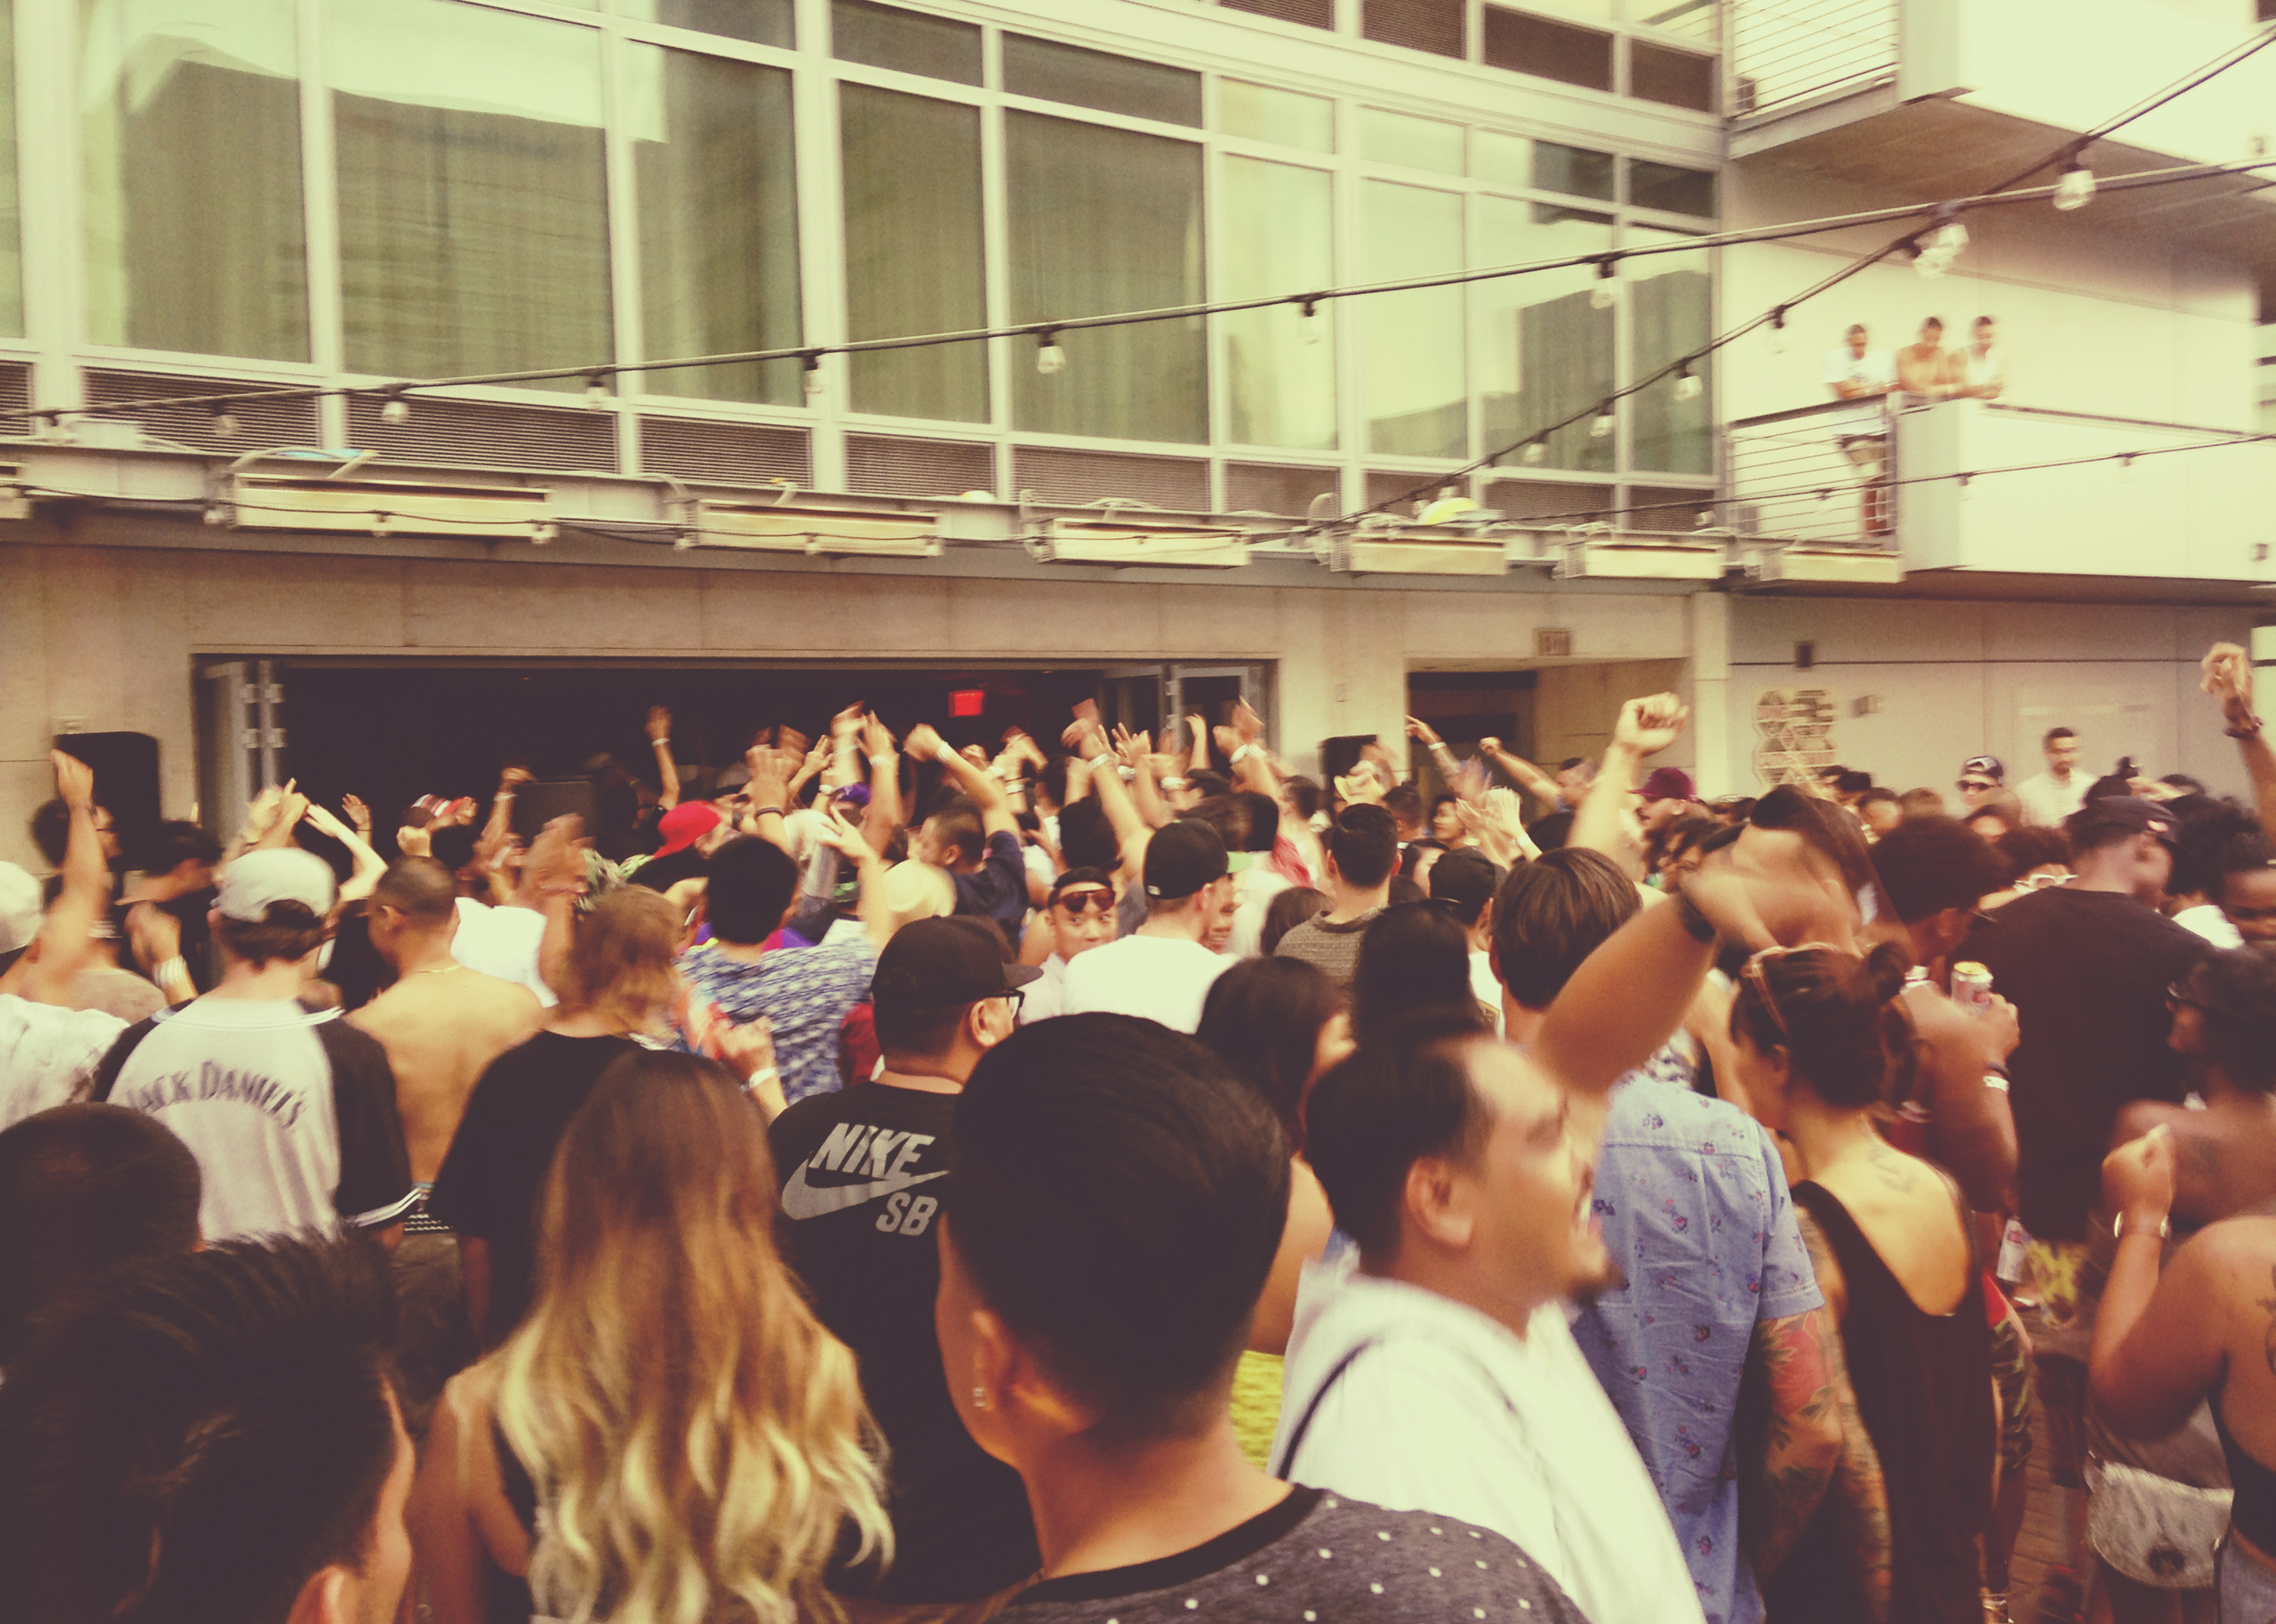 Next, we headed to the Palomar hotel to check out the Soulection  pool party.